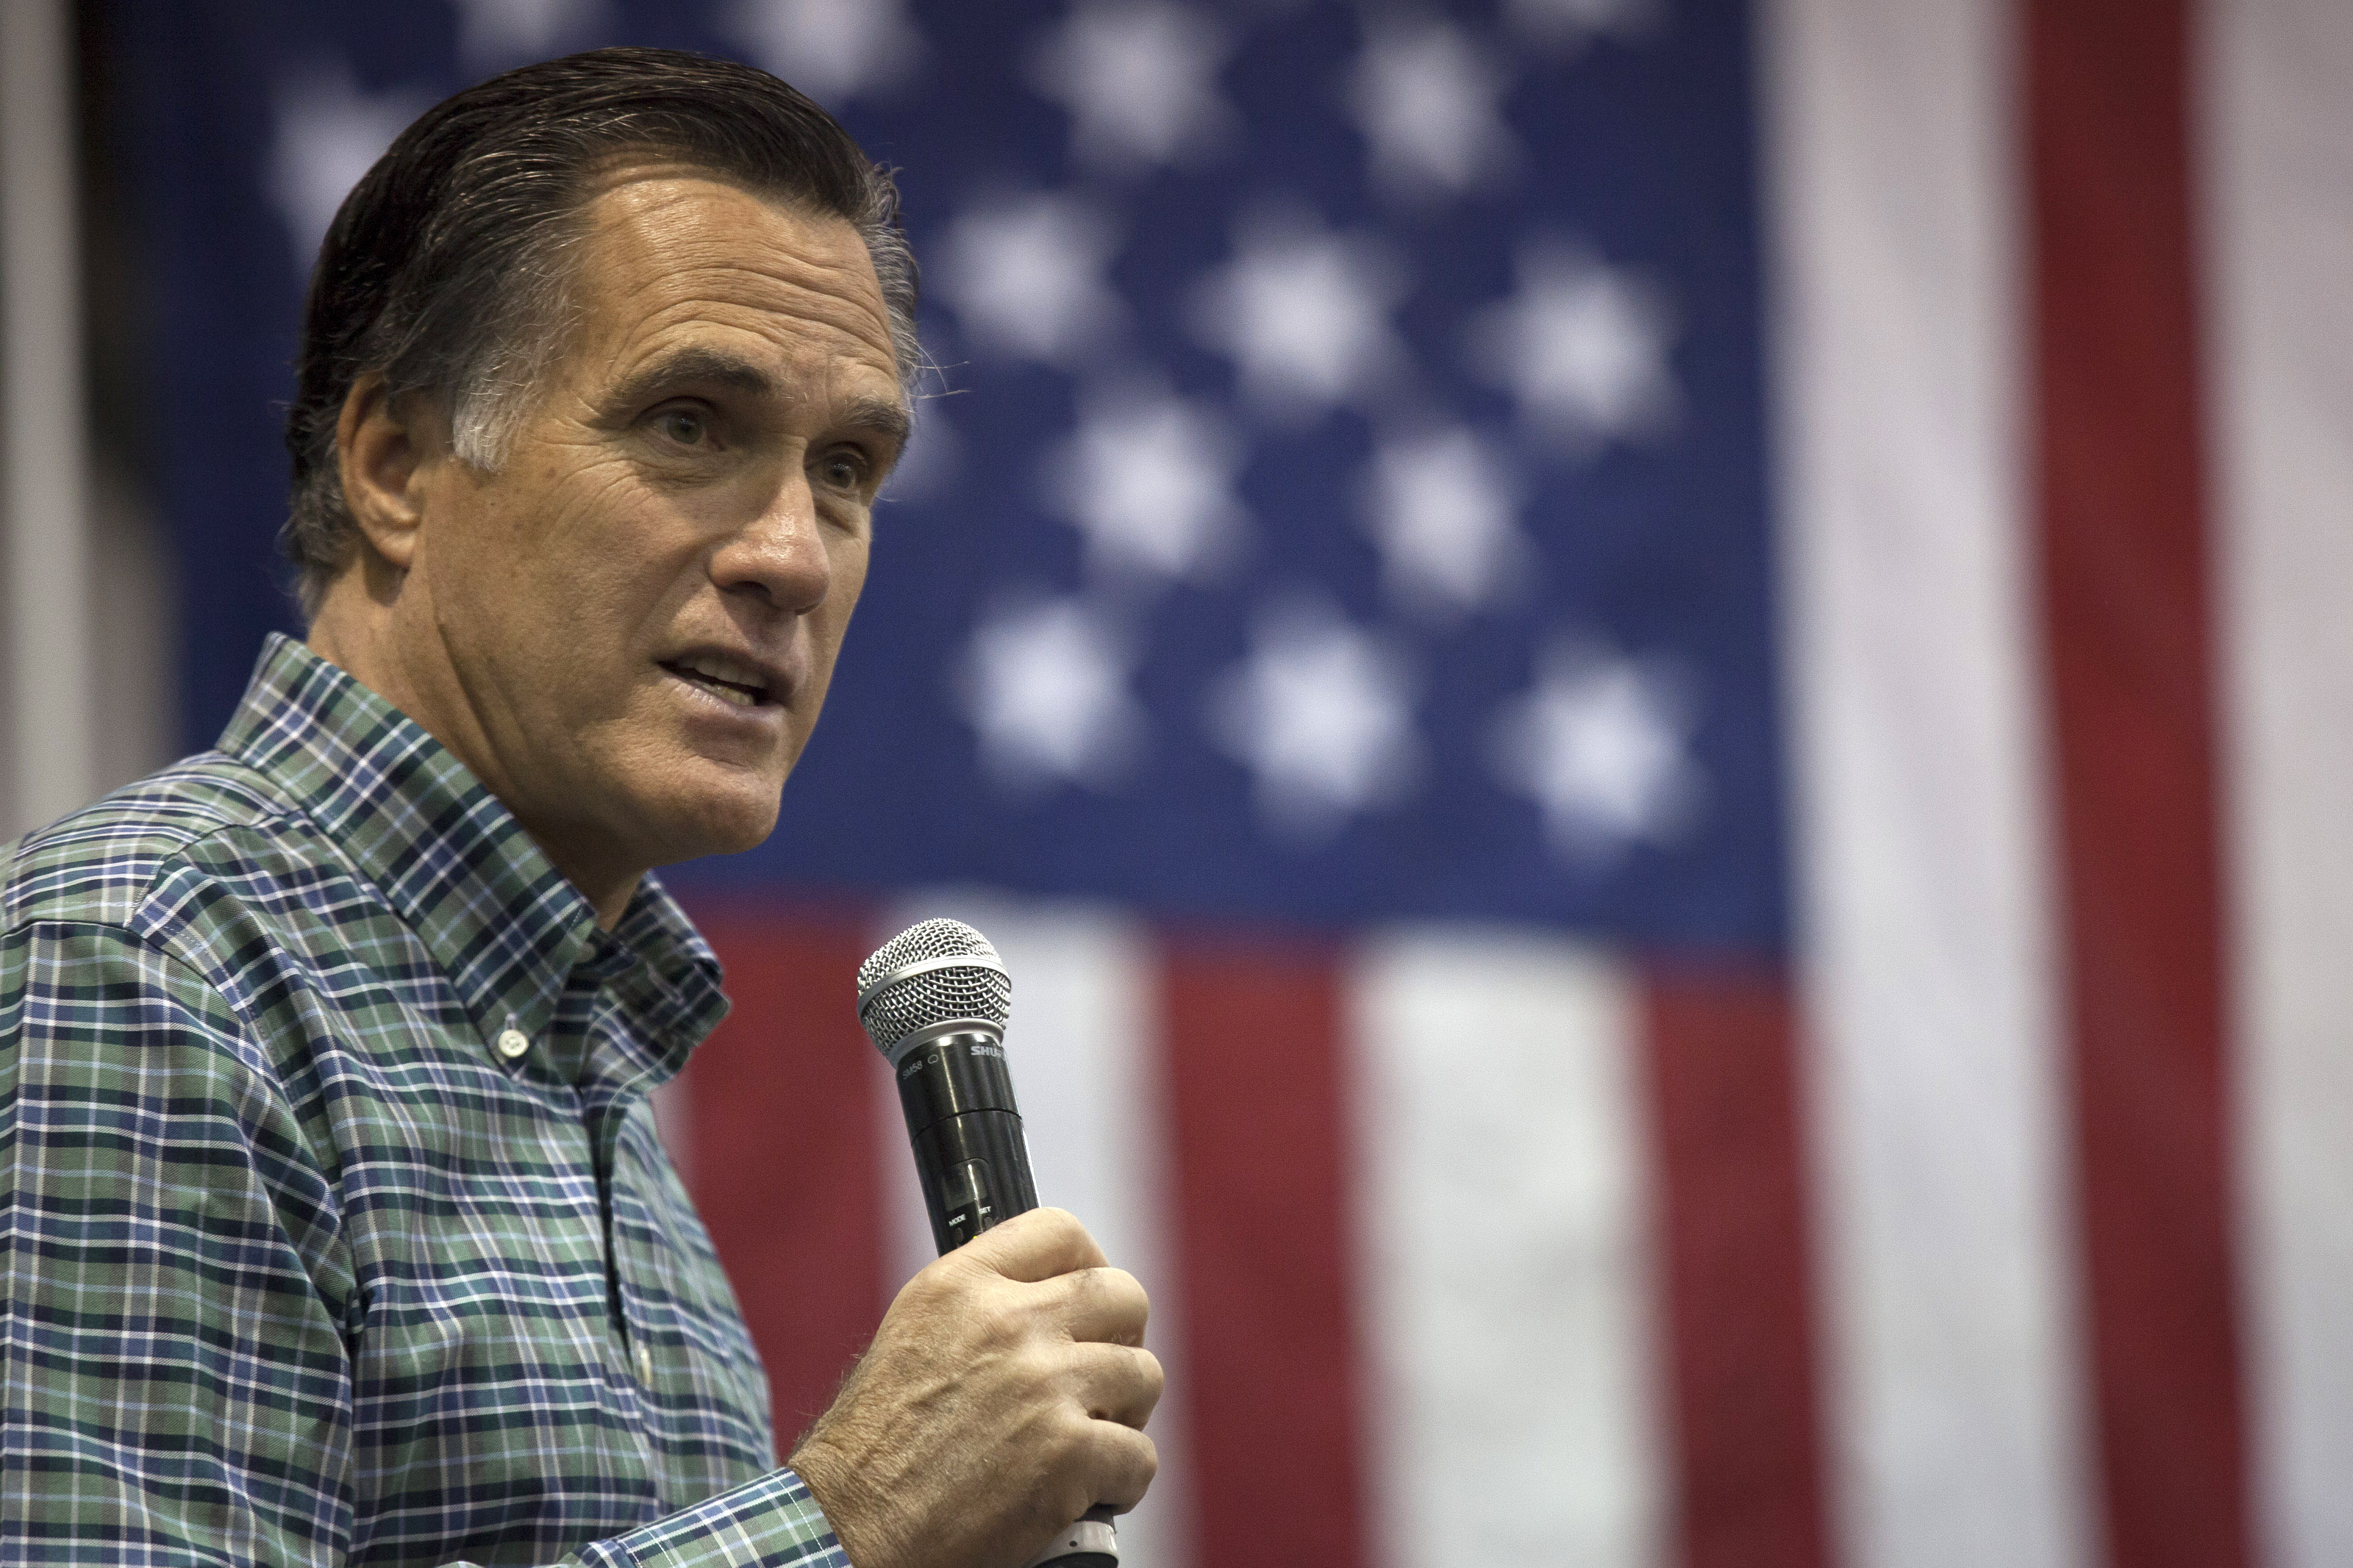 Former Mass. Gov. Mitt Romney addresses the crowd during a rally for Republican Senate candidate Dan Sullivan  on Nov. 3, 2014 in Anchorage, Alaska.